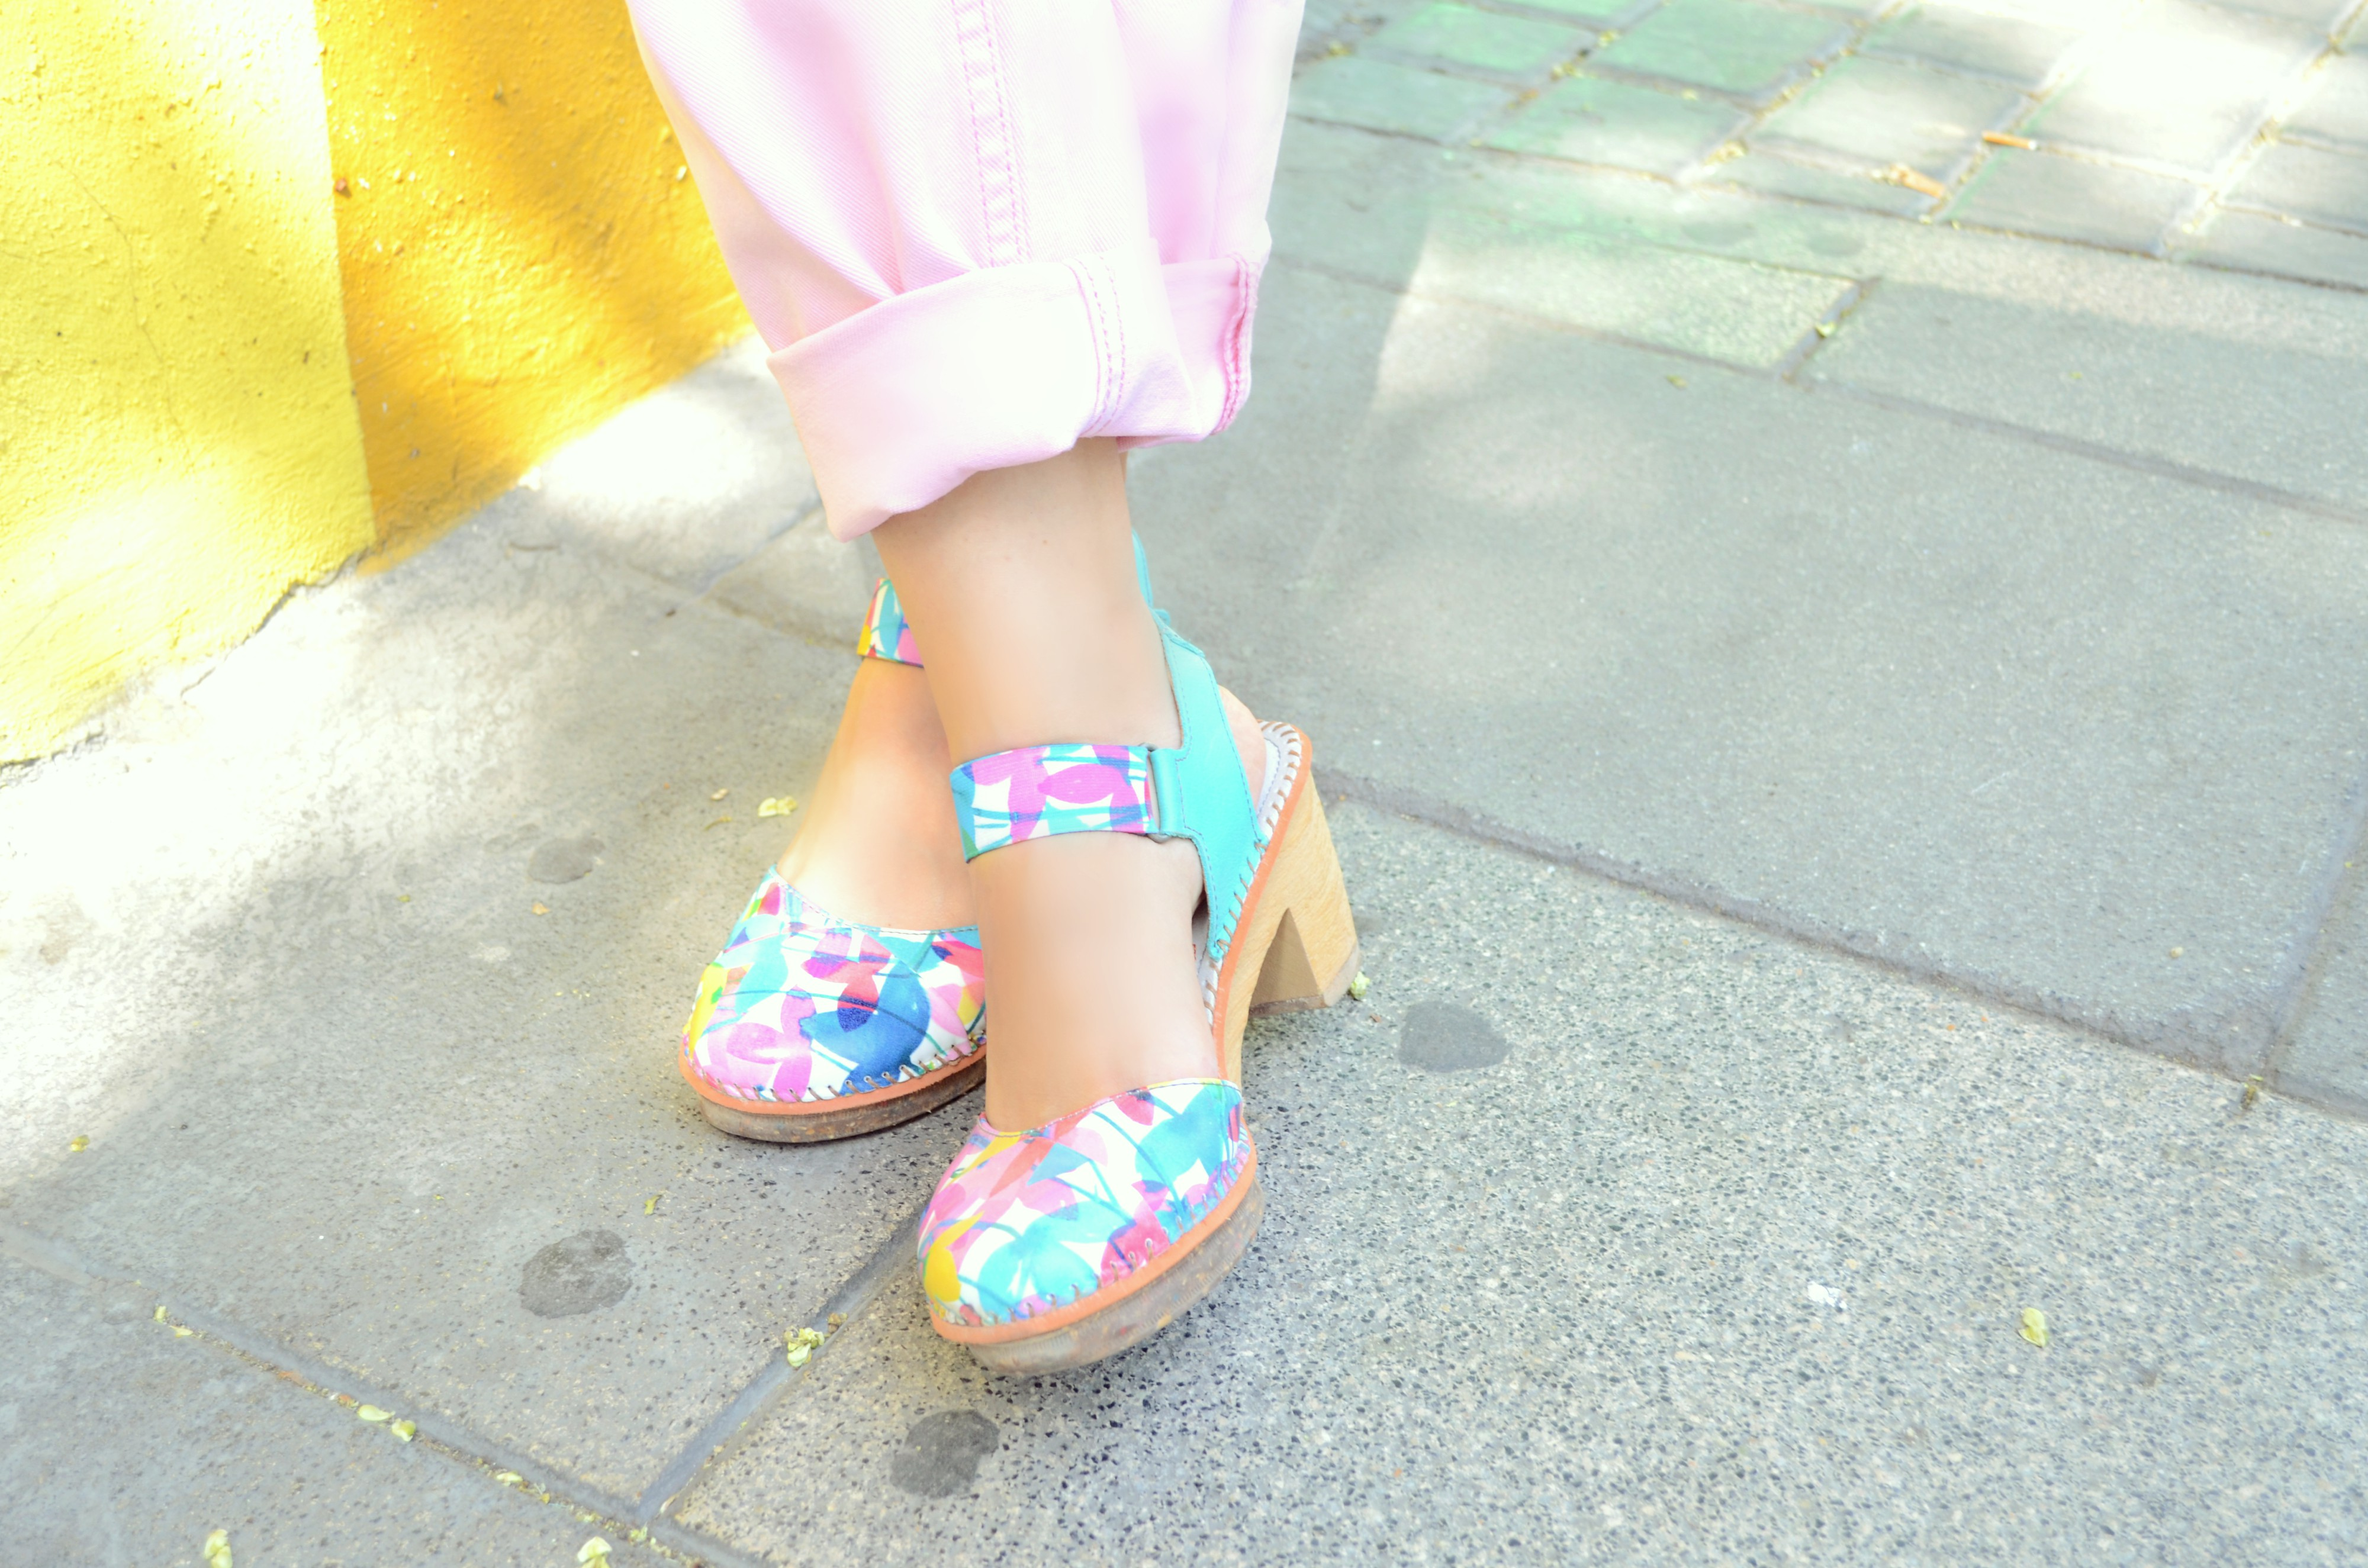 The-art-company-zapatos-de-moda-ChicAdicta-influencer-espana-Chic-Adicta-vaqueros-rosa-retro-shoes-PiensaenChic-blog-de-moda-Piensa-en-Chic